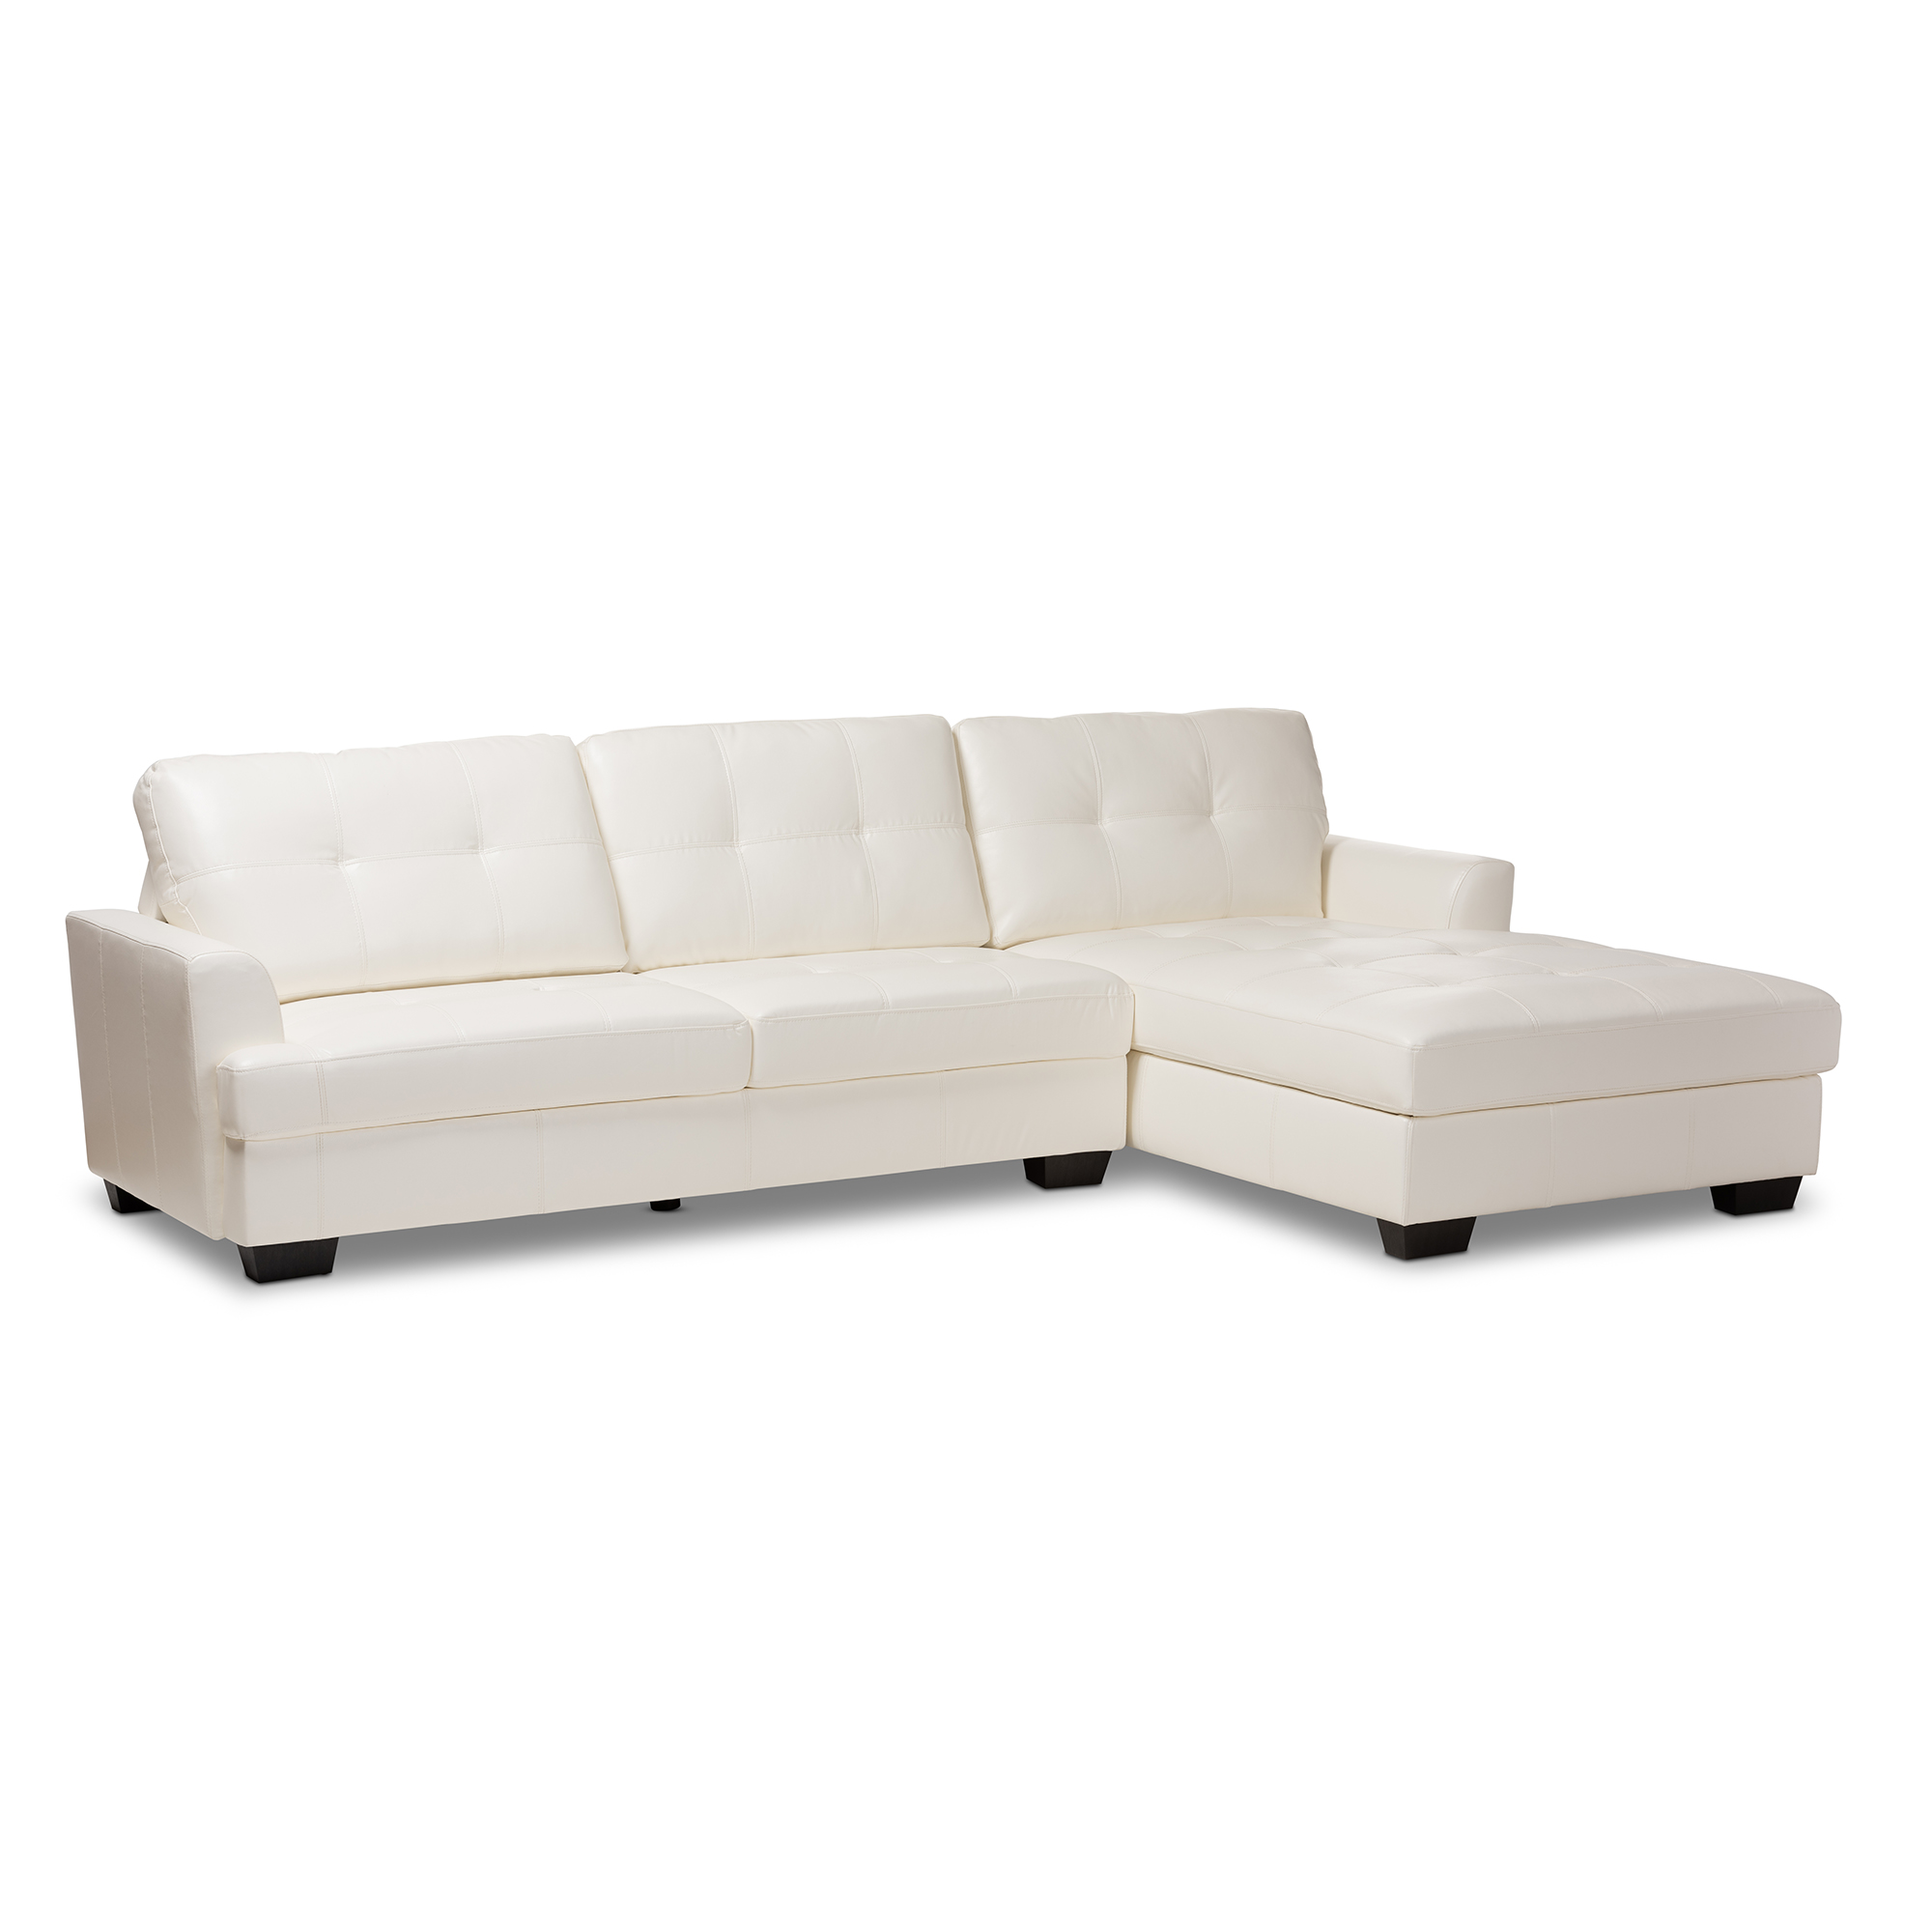 Baxton Studio Adalynn Modern and Contemporary White Faux Leather ...